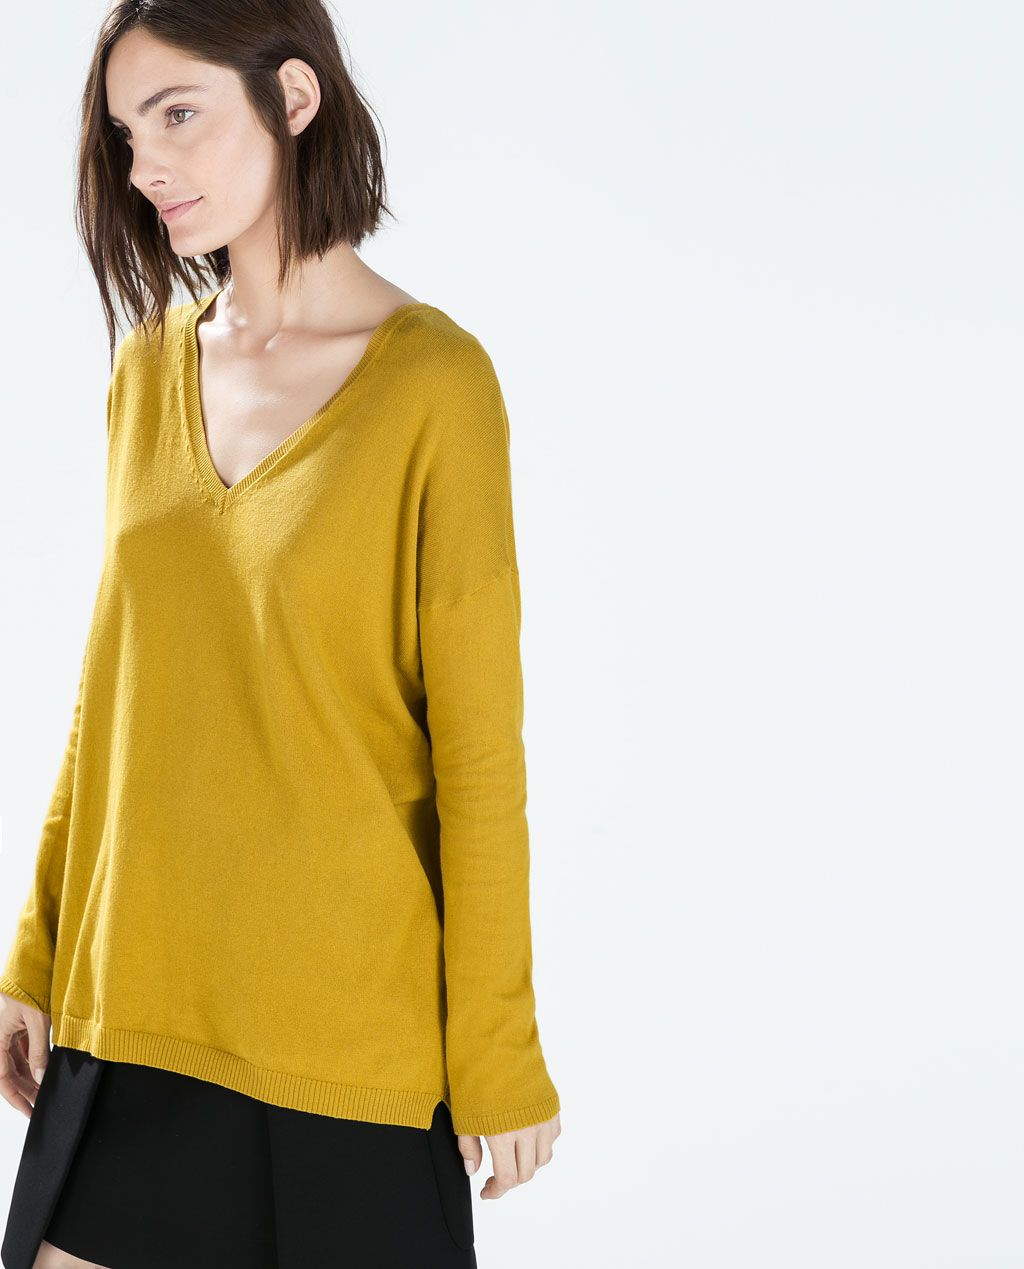 OVERSIZED V-NECK SWEATER from Zara